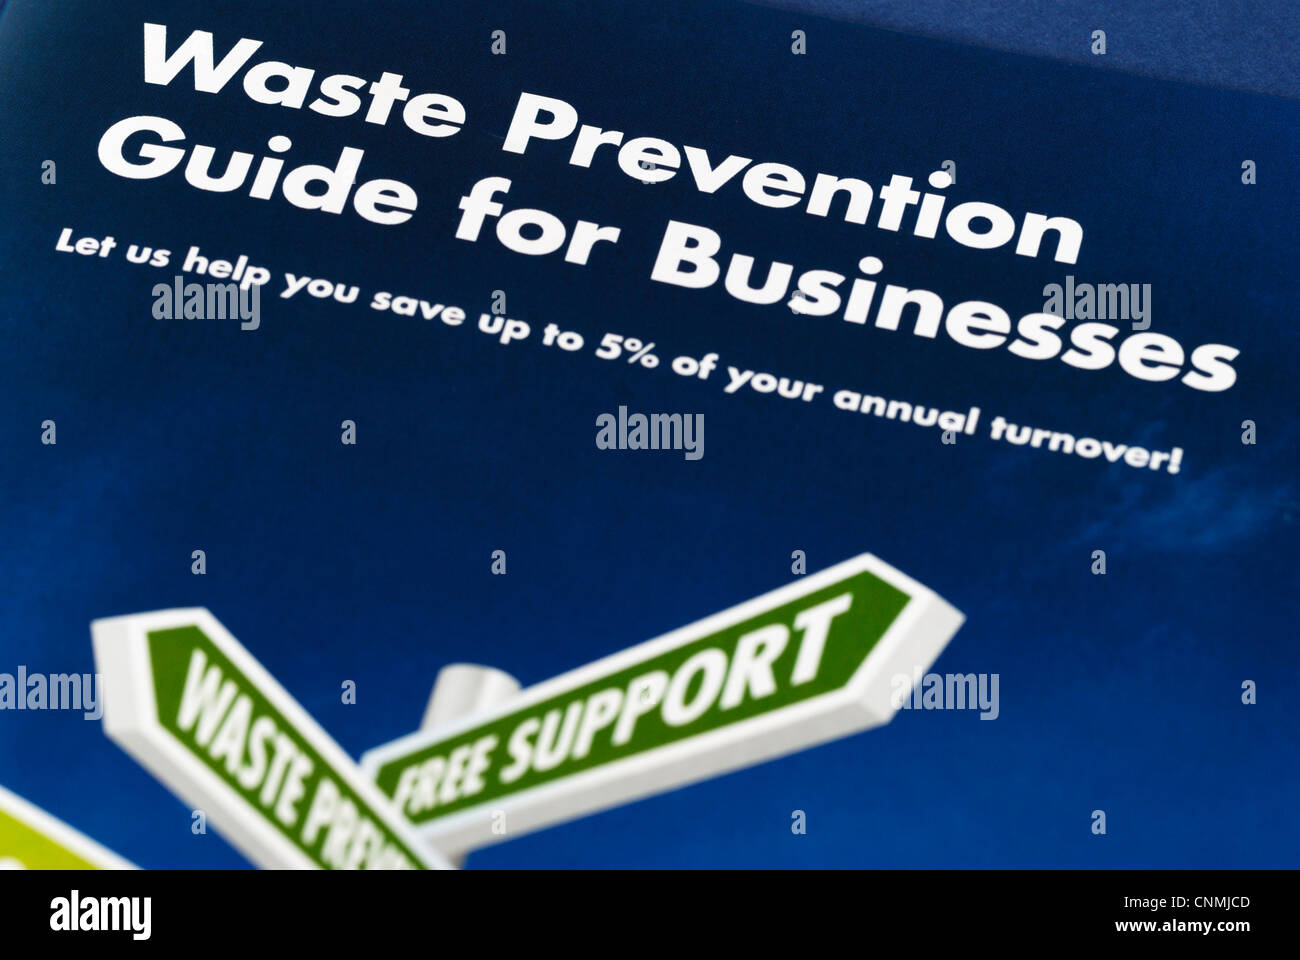 Waste prevention guide for businesses - Stock Image